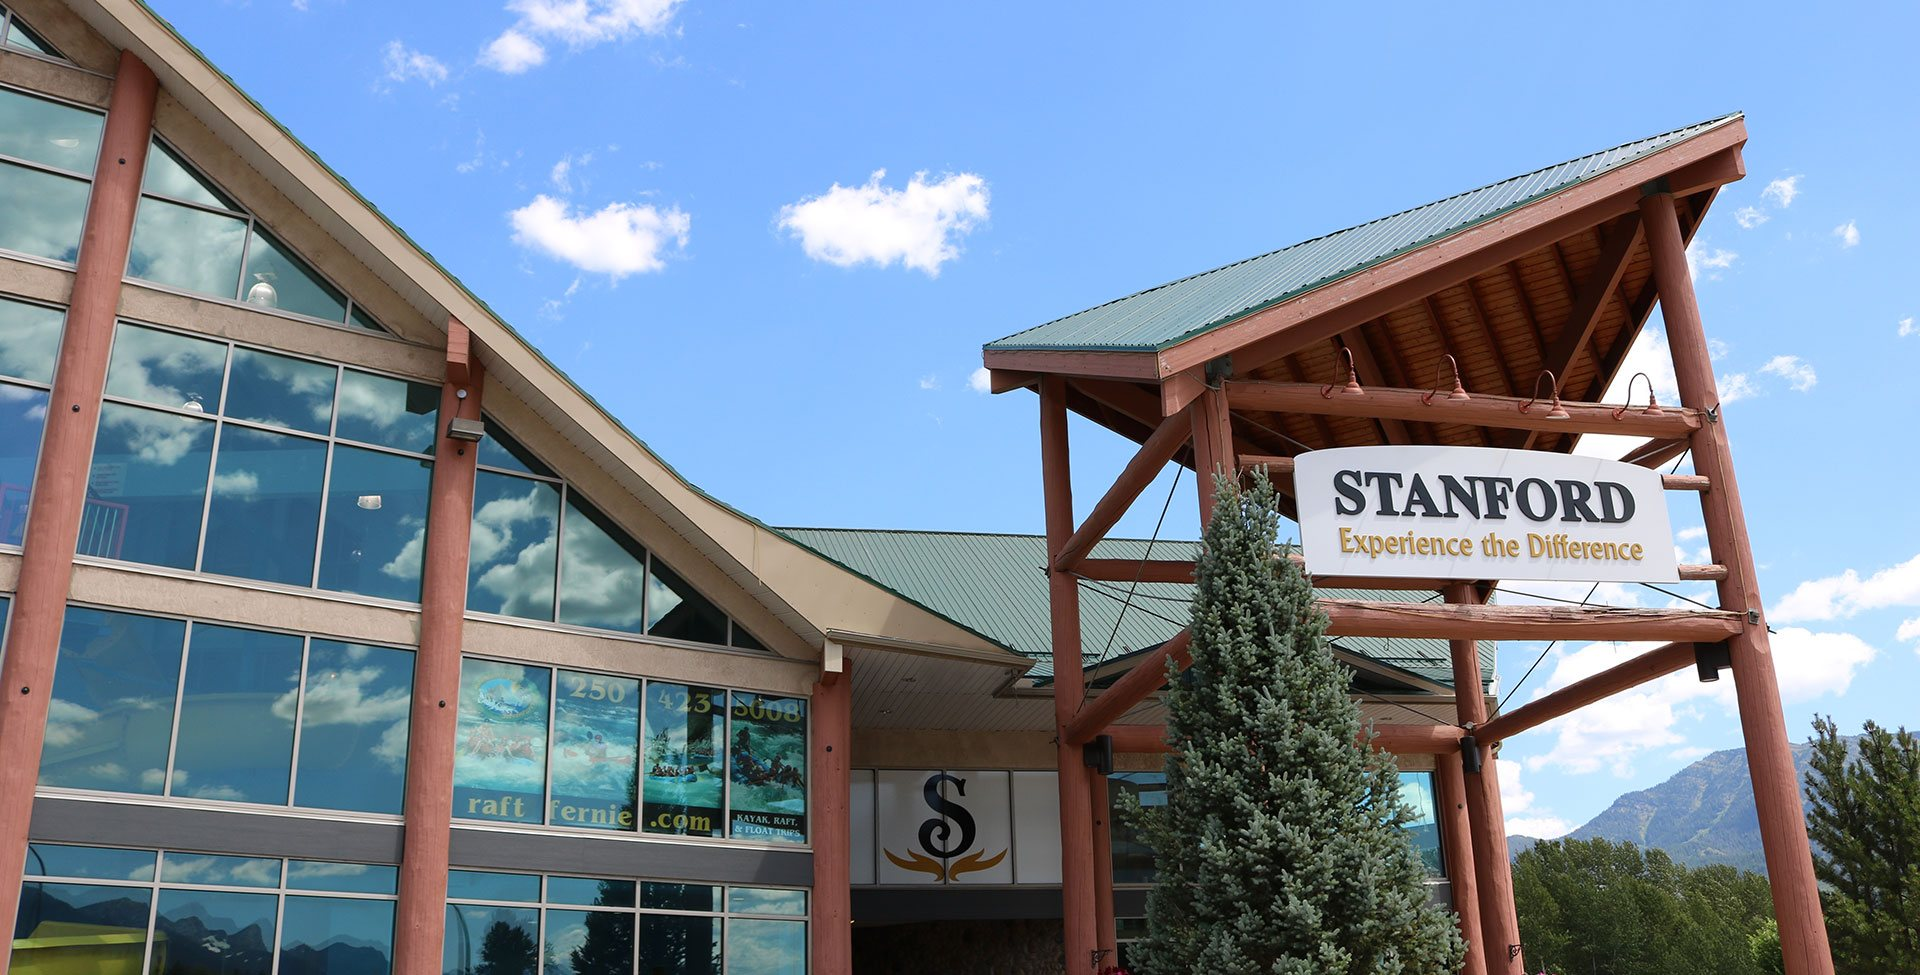 A skyward view of the triangular roof of the Stanford Fernie Resort building with ground to ceiling windows next to the triangular shaped roof portico bearing the company sign that greets visitors upon arrival.